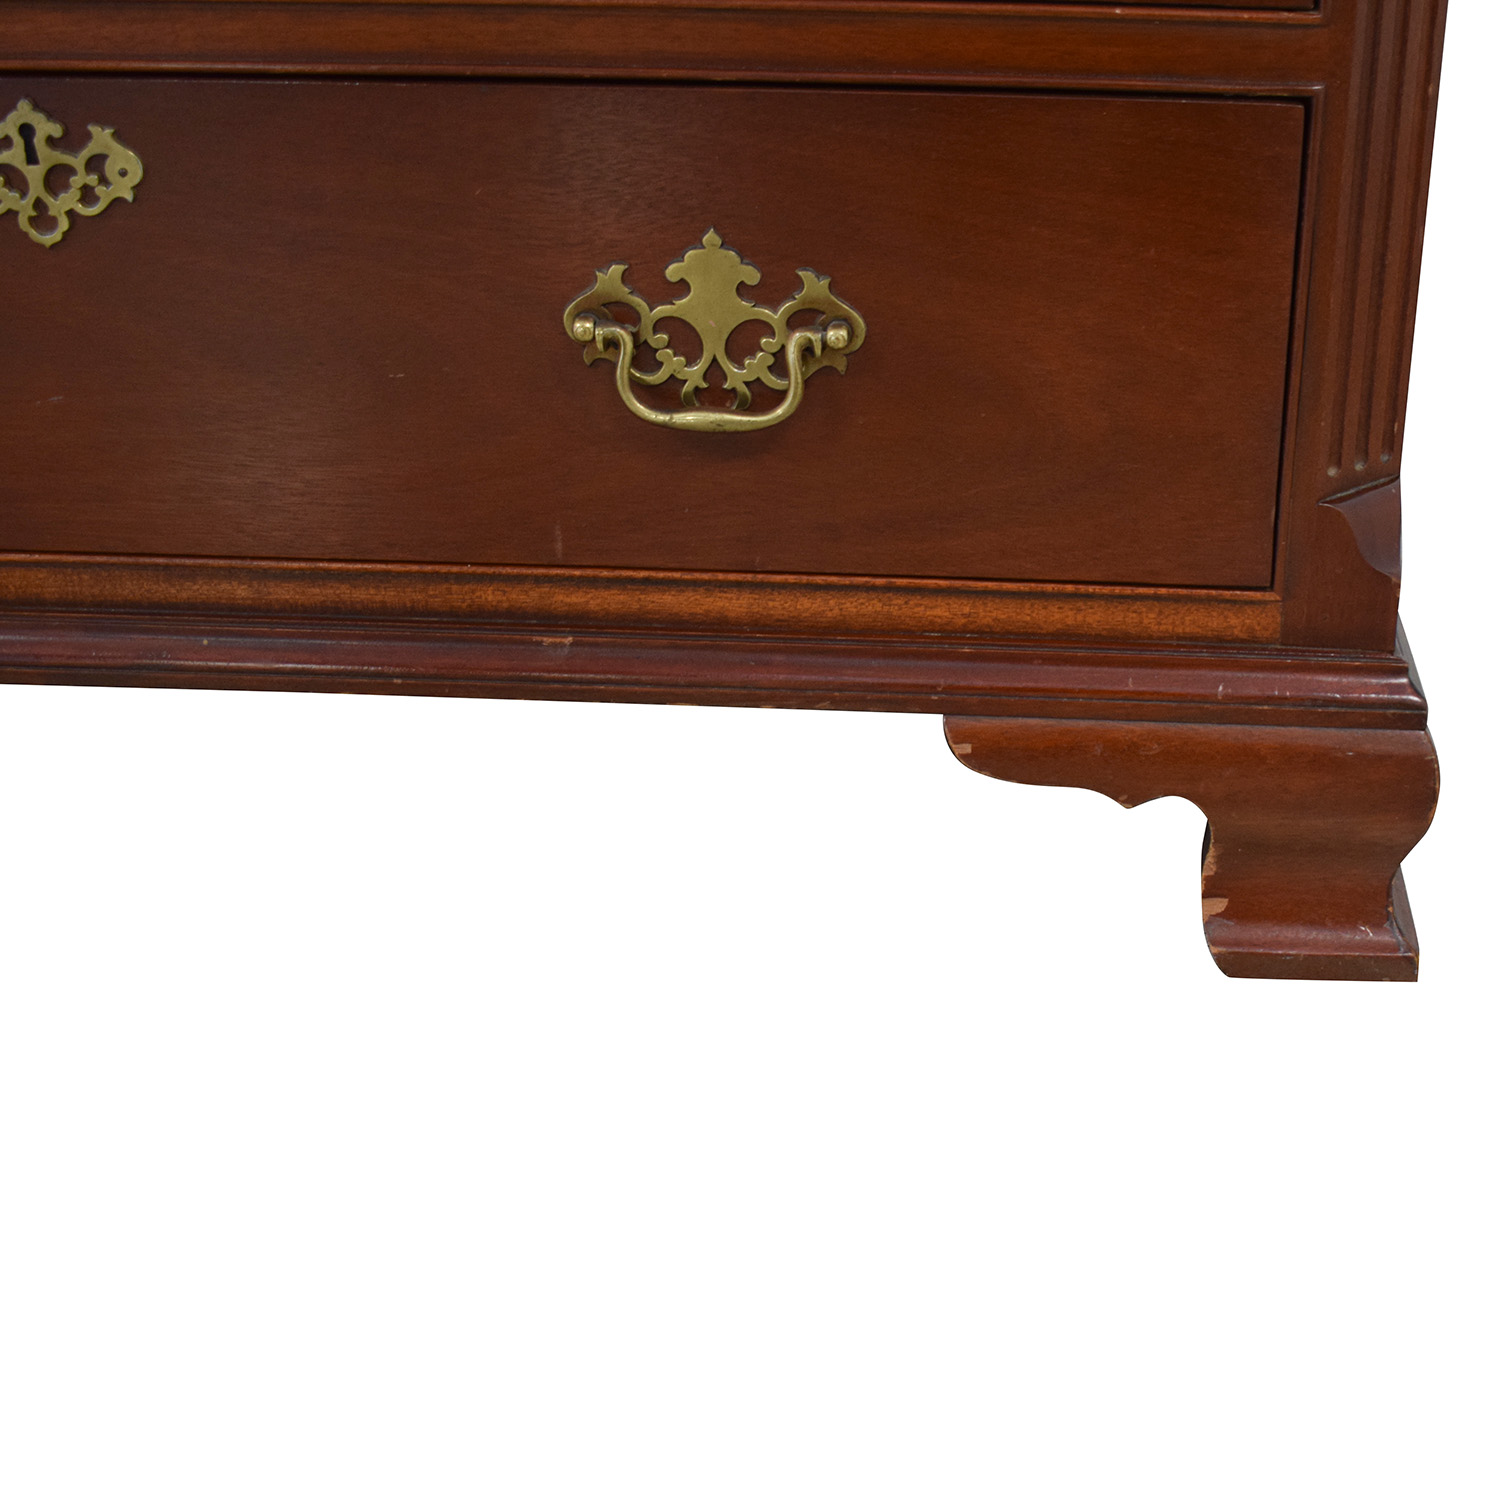 Baker Furniture Baker Antique Chest of Drawers brown